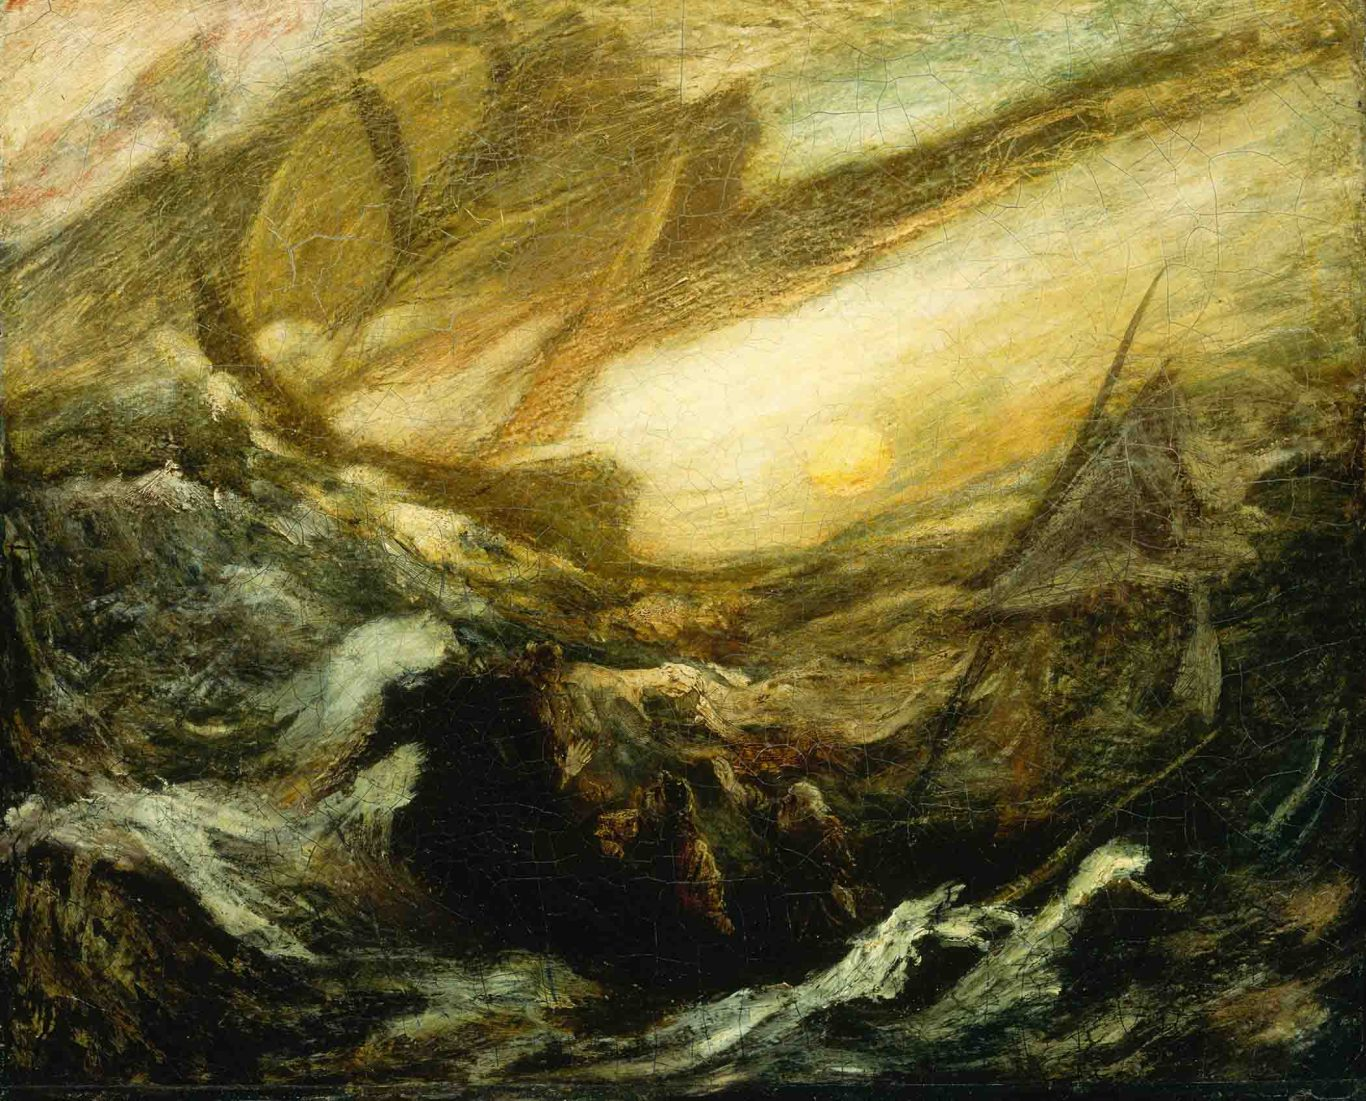 Albert Pinkham Ryder exhibit at the New Bedford Whaling Museum